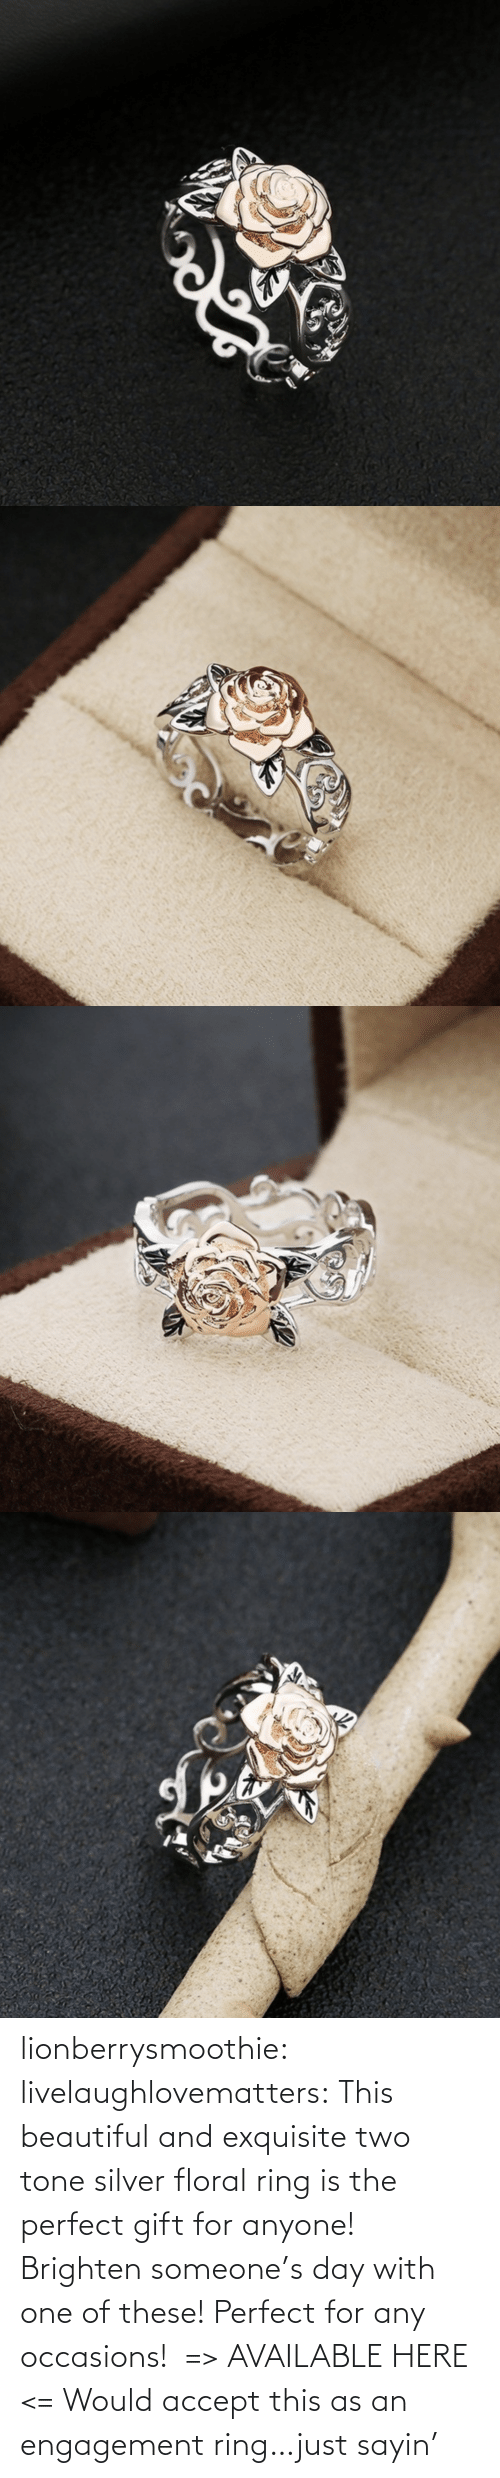 accept: lionberrysmoothie:  livelaughlovematters: This beautiful and exquisite two tone silver floral ring is the perfect gift for anyone! Brighten someone's day with one of these! Perfect for any occasions!  => AVAILABLE HERE <=    Would accept this as an engagement ring…just sayin'